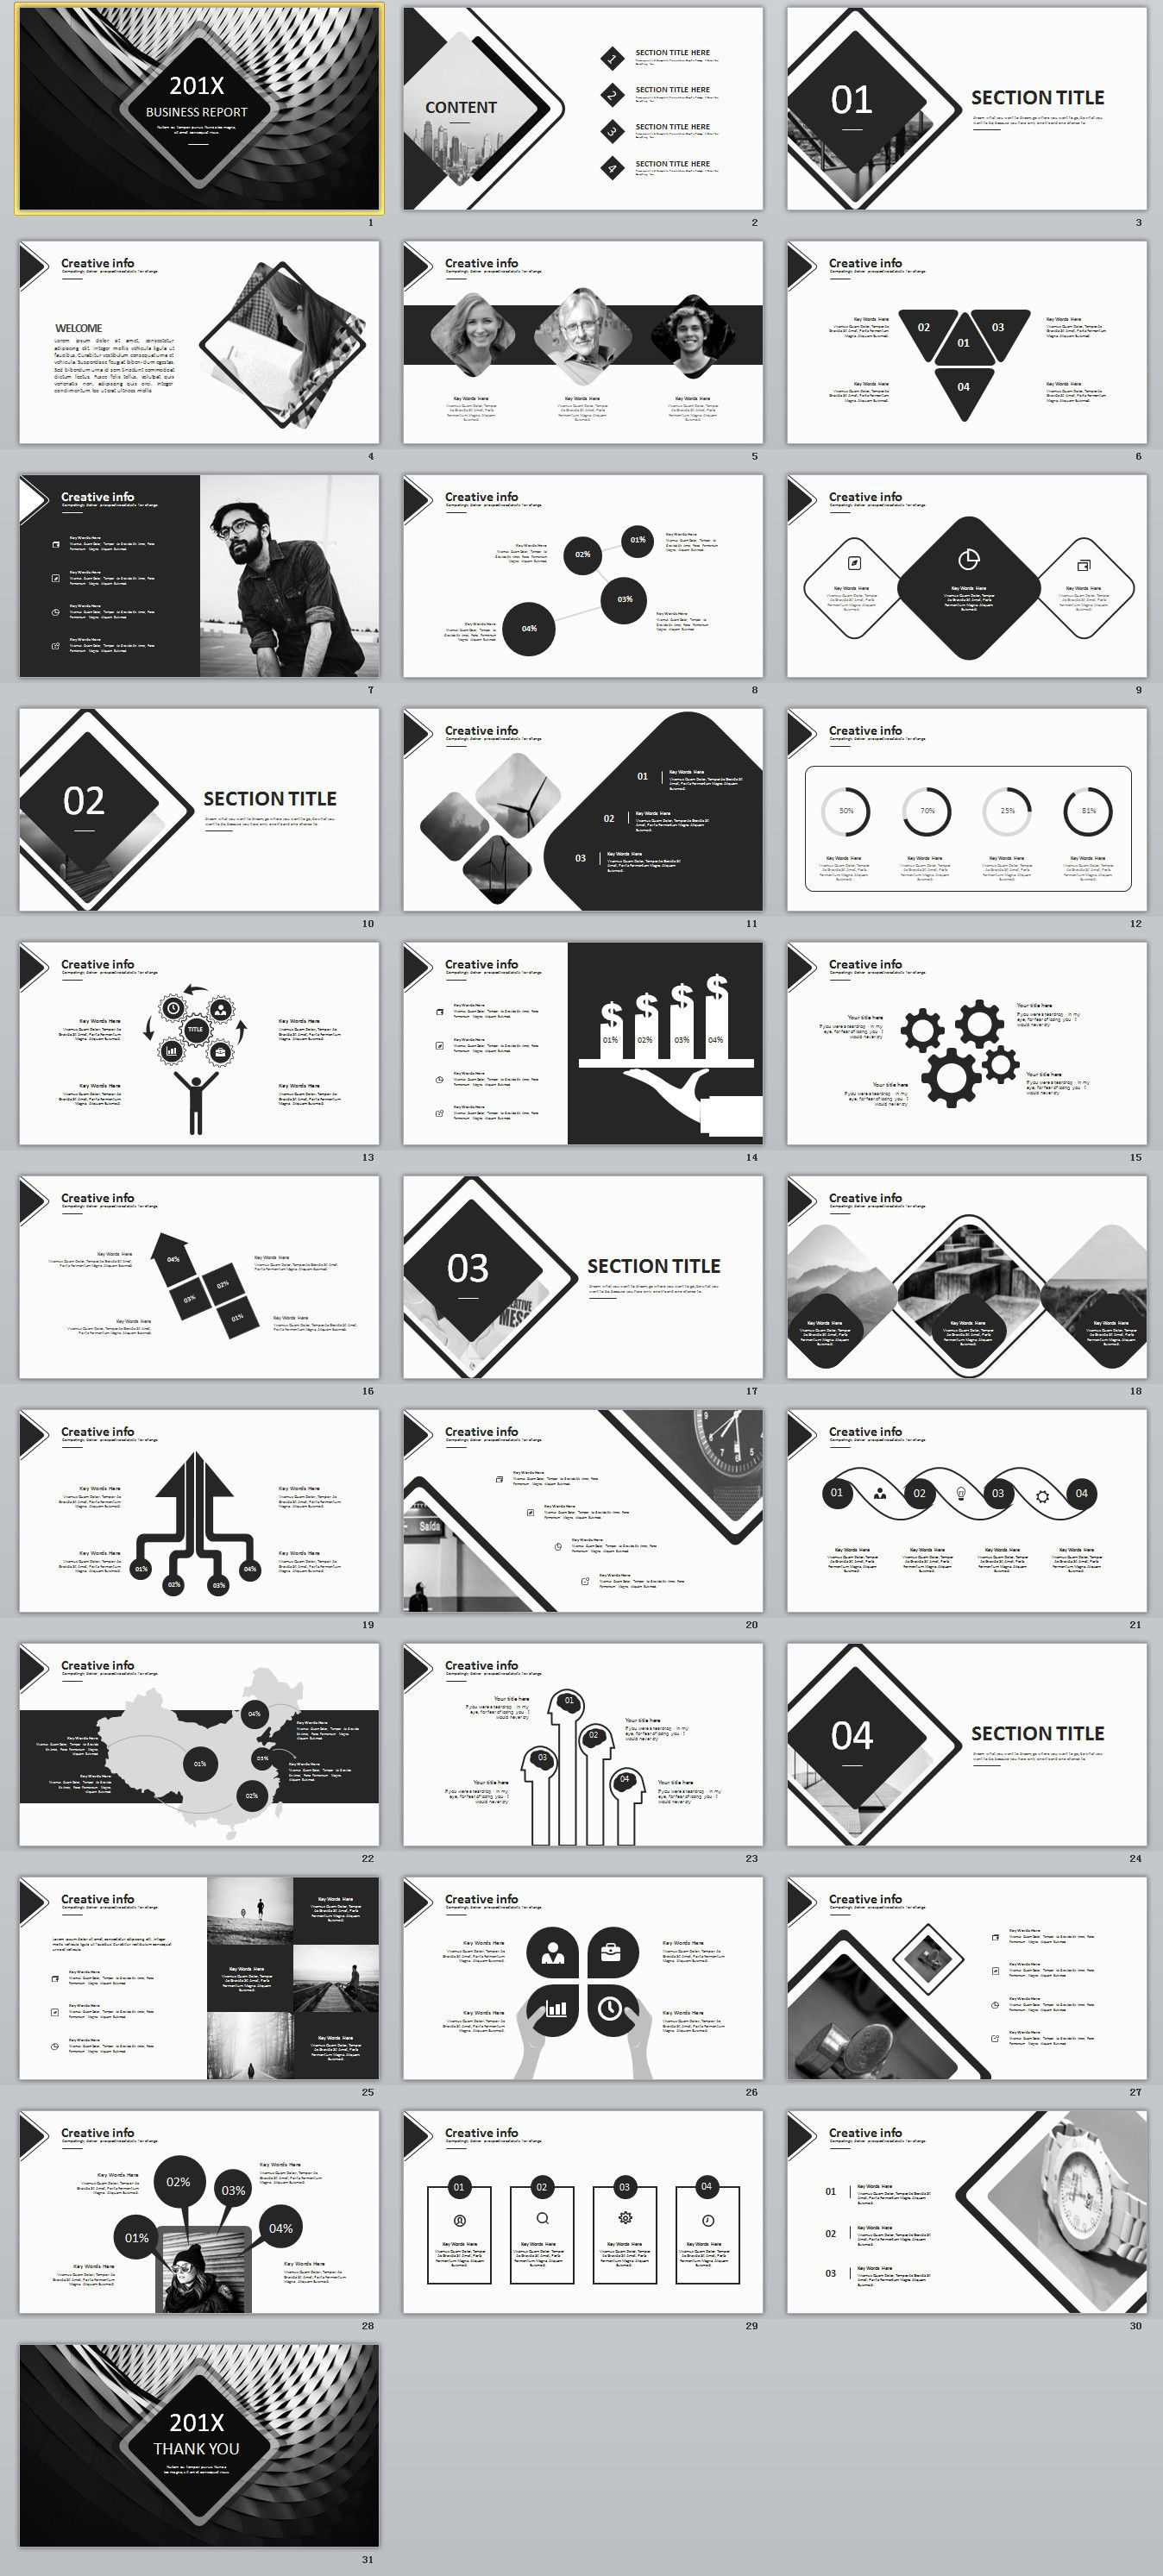 31 gray creative timeline powerpoint template powerpoint 31 gray creative timeline powerpoint template powerpoint templates presentation animation toneelgroepblik Choice Image